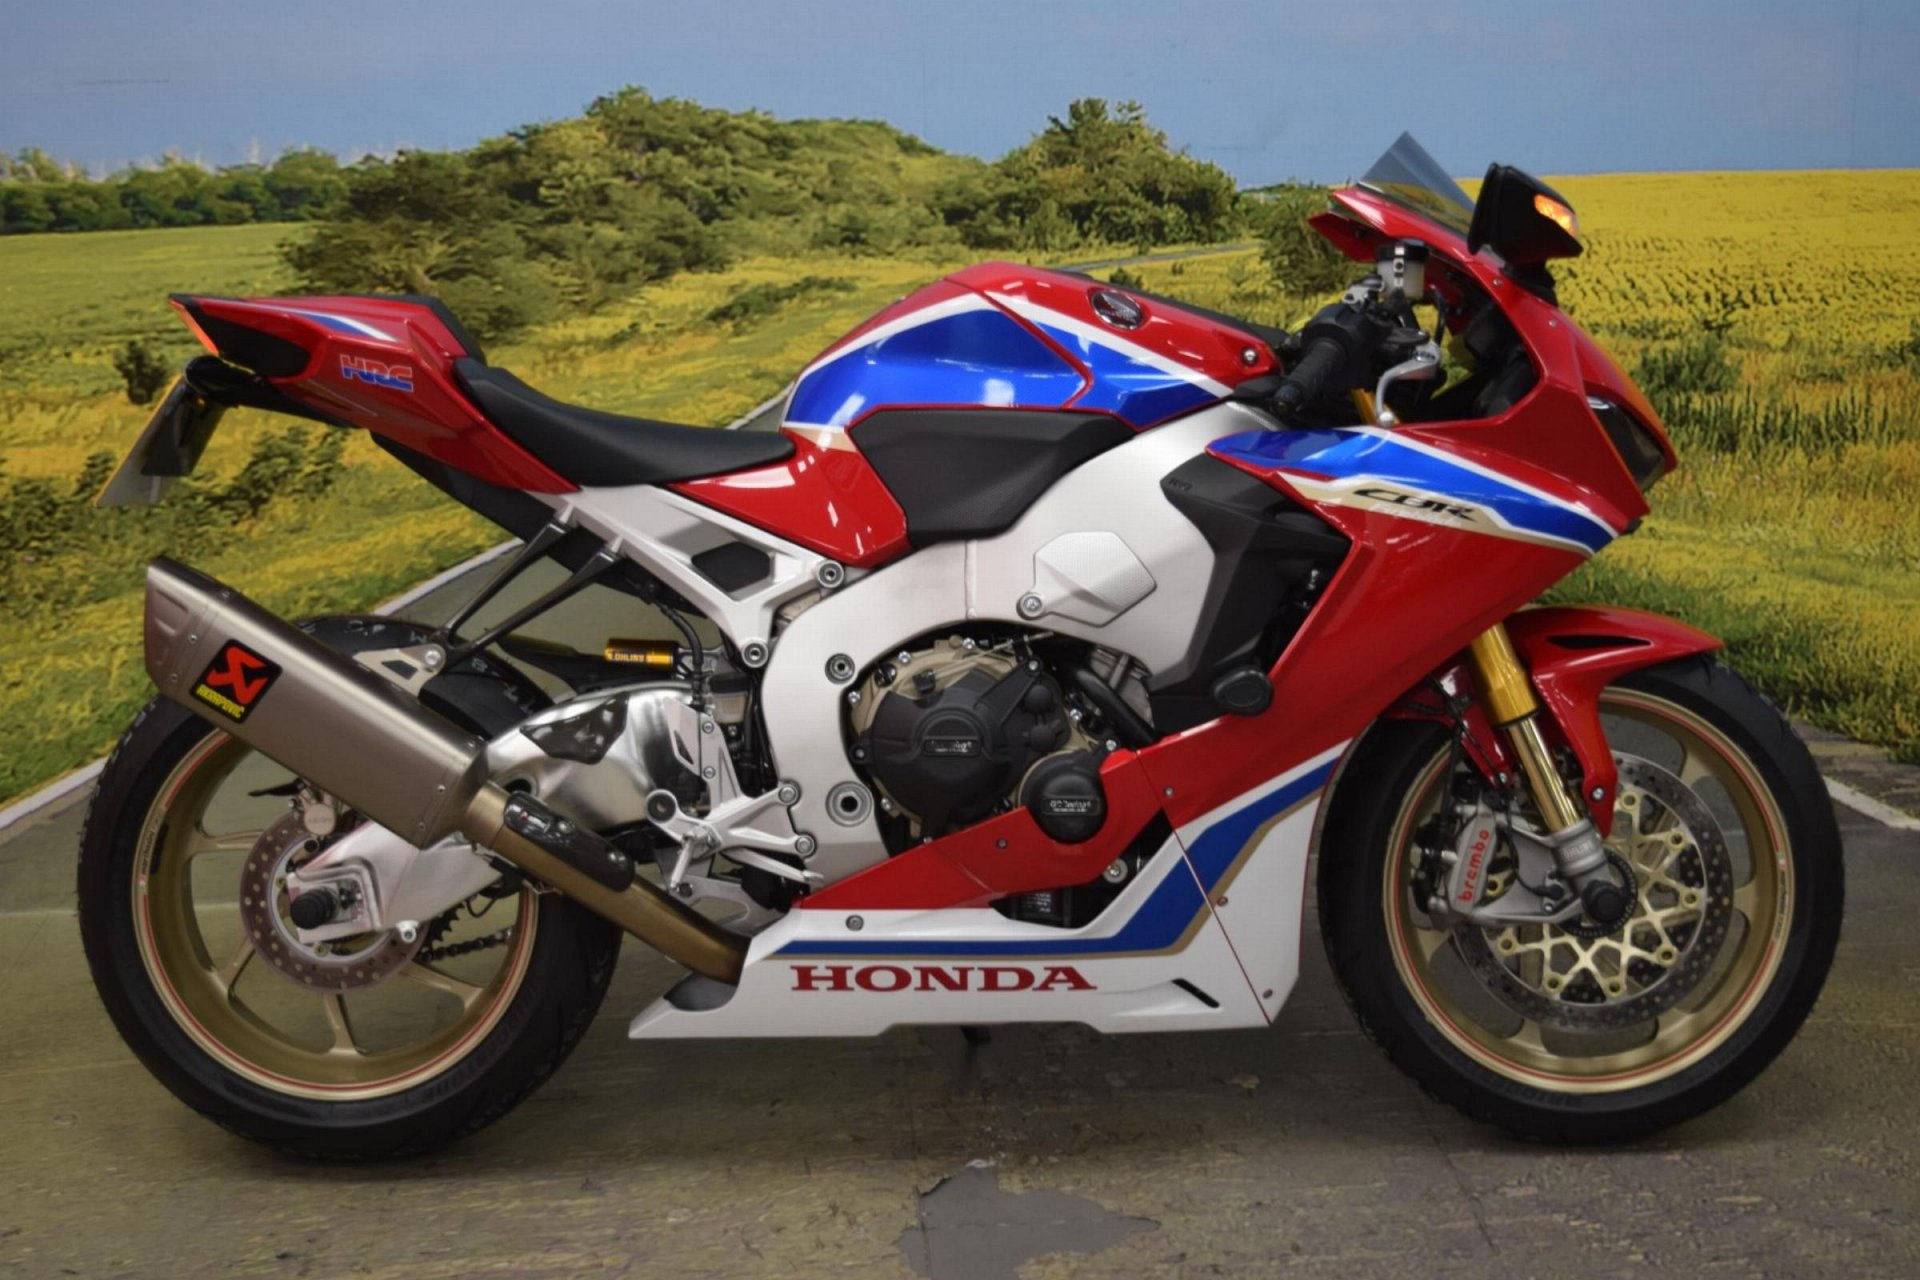 2018 Honda CBR 1000 SP2 for sale in Staffordshire